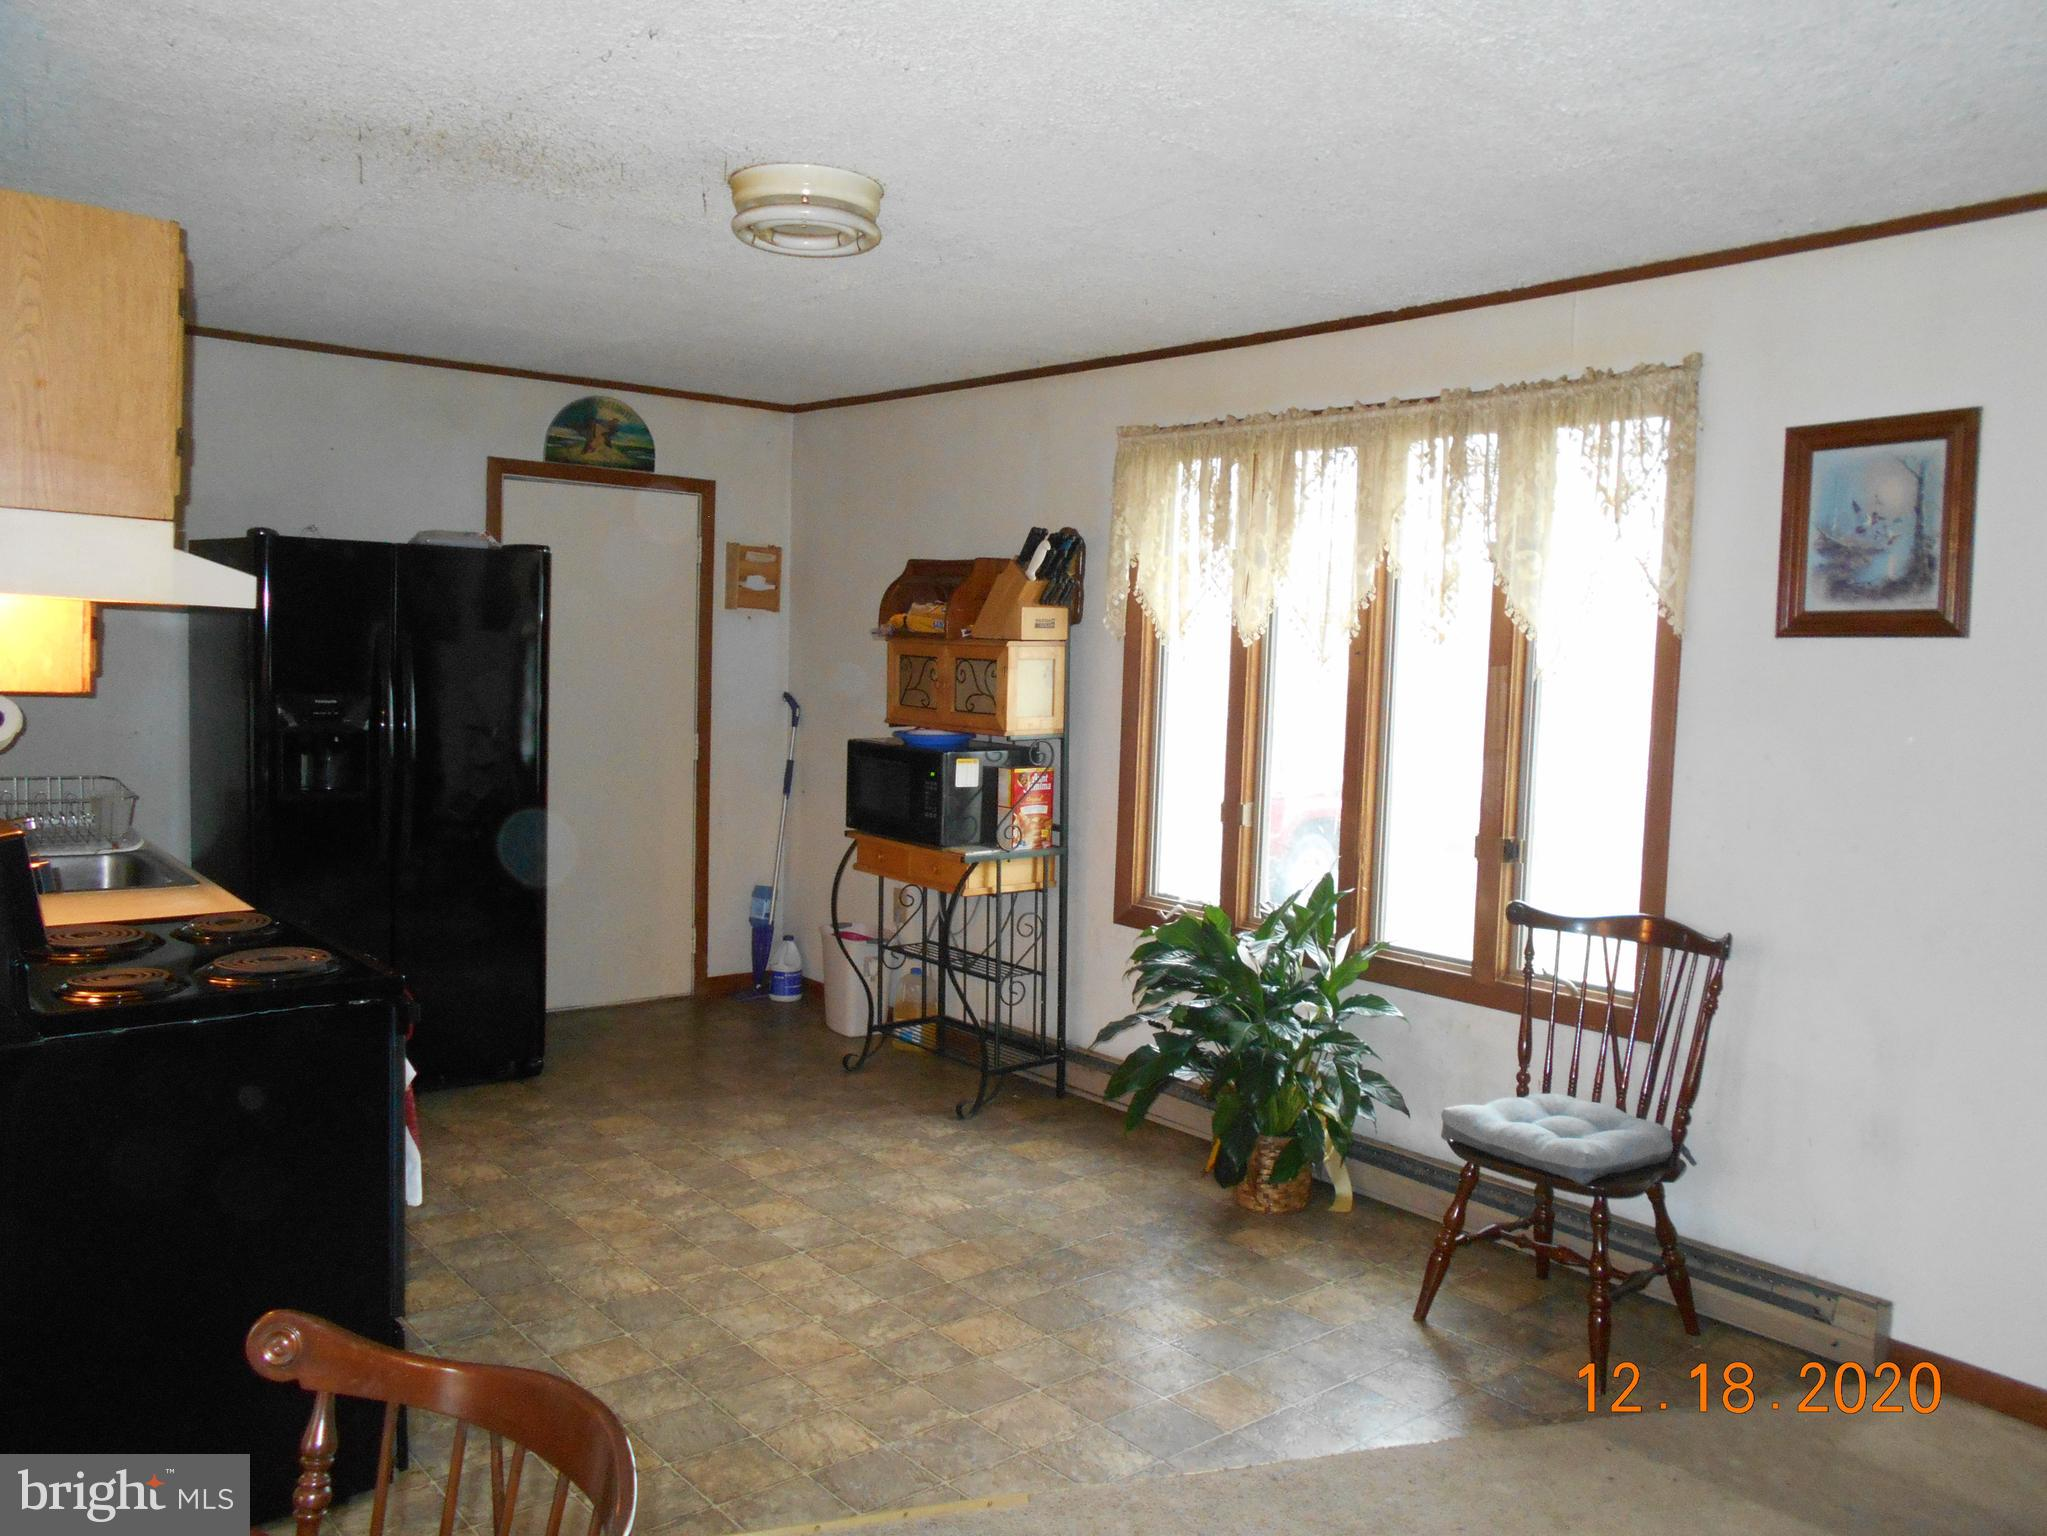 4658 WHITE MARSH ROAD, MADISON, Maryland 21648, 3 Bedrooms Bedrooms, ,1 BathroomBathrooms,Single Family,For Sale,4658 WHITE MARSH ROAD,MDDO126384